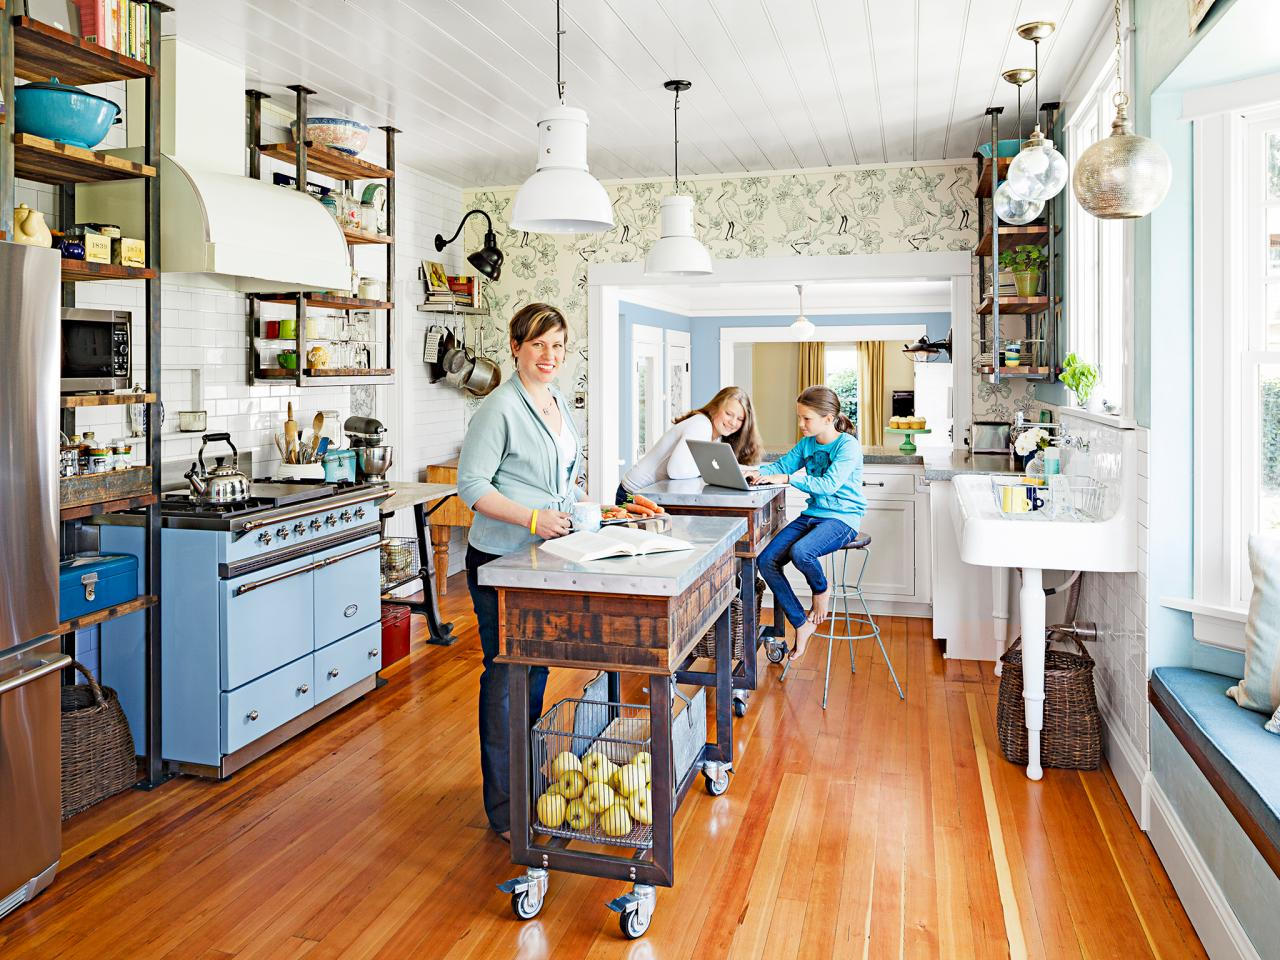 Quirky kitchen design ideas to steal from hgtv magazine for Kitchen ideas